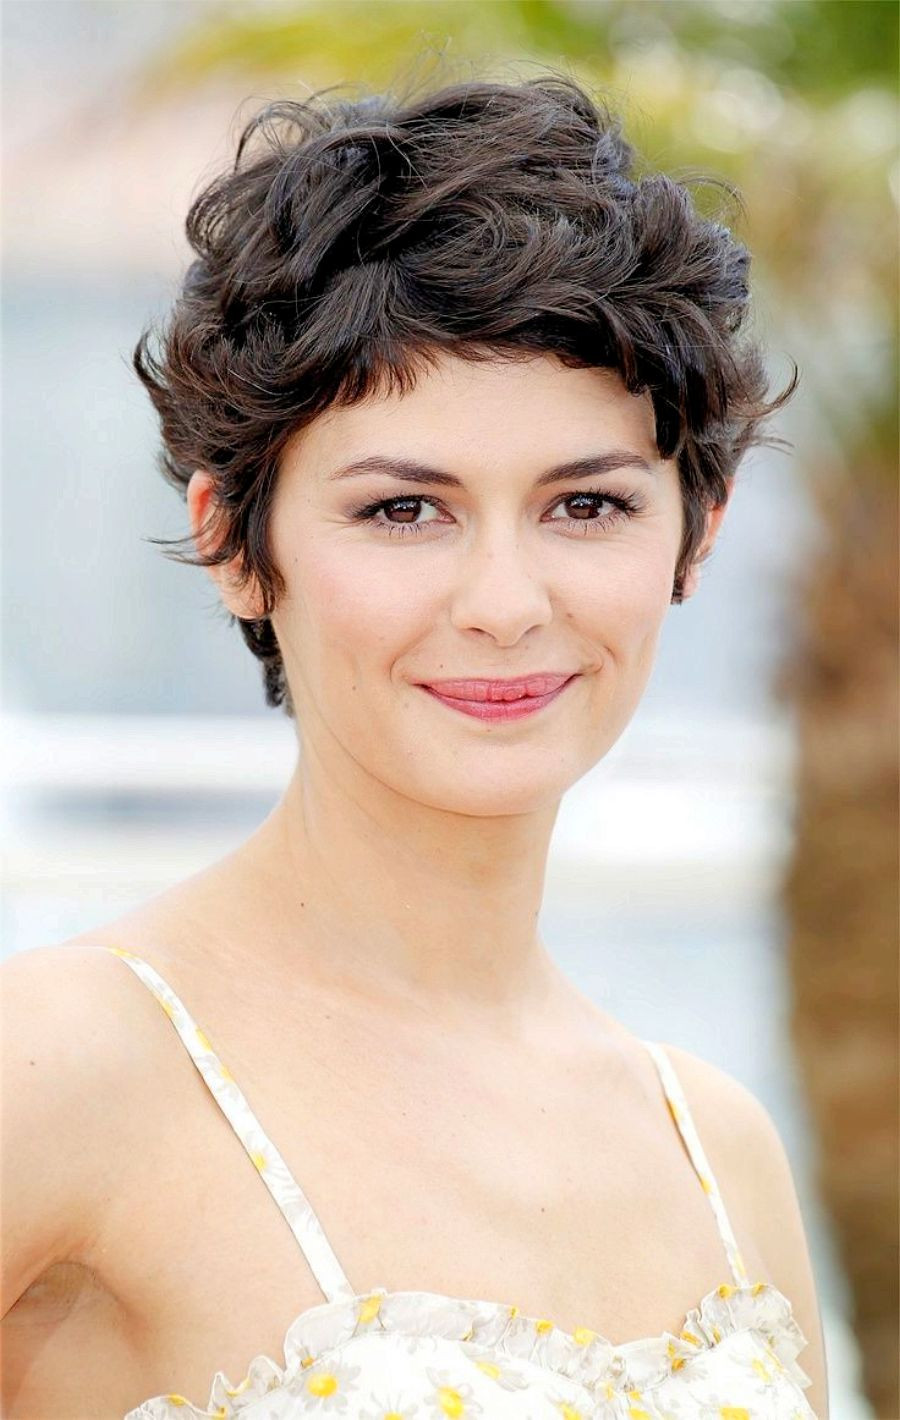 Best ideas about Curly Pixie Hairstyles . Save or Pin Cute Curly Pixie Hairstyles and Haircut Ideas Fave Now.